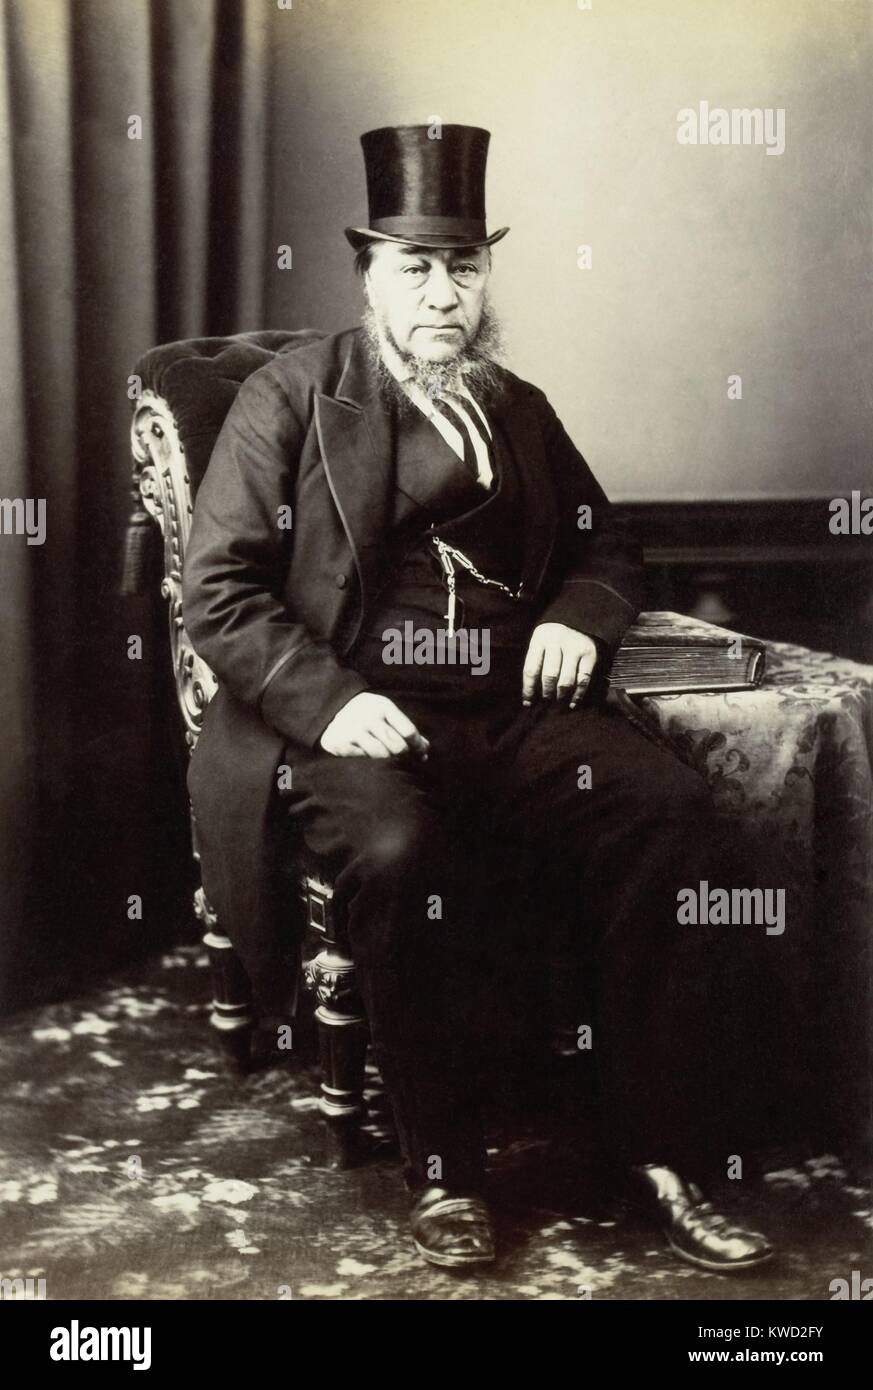 Paul Kruger, President of the South African Republic, 1883-1900. He led the Afrikaners, settlers of Dutch Ancestry, - Stock Image